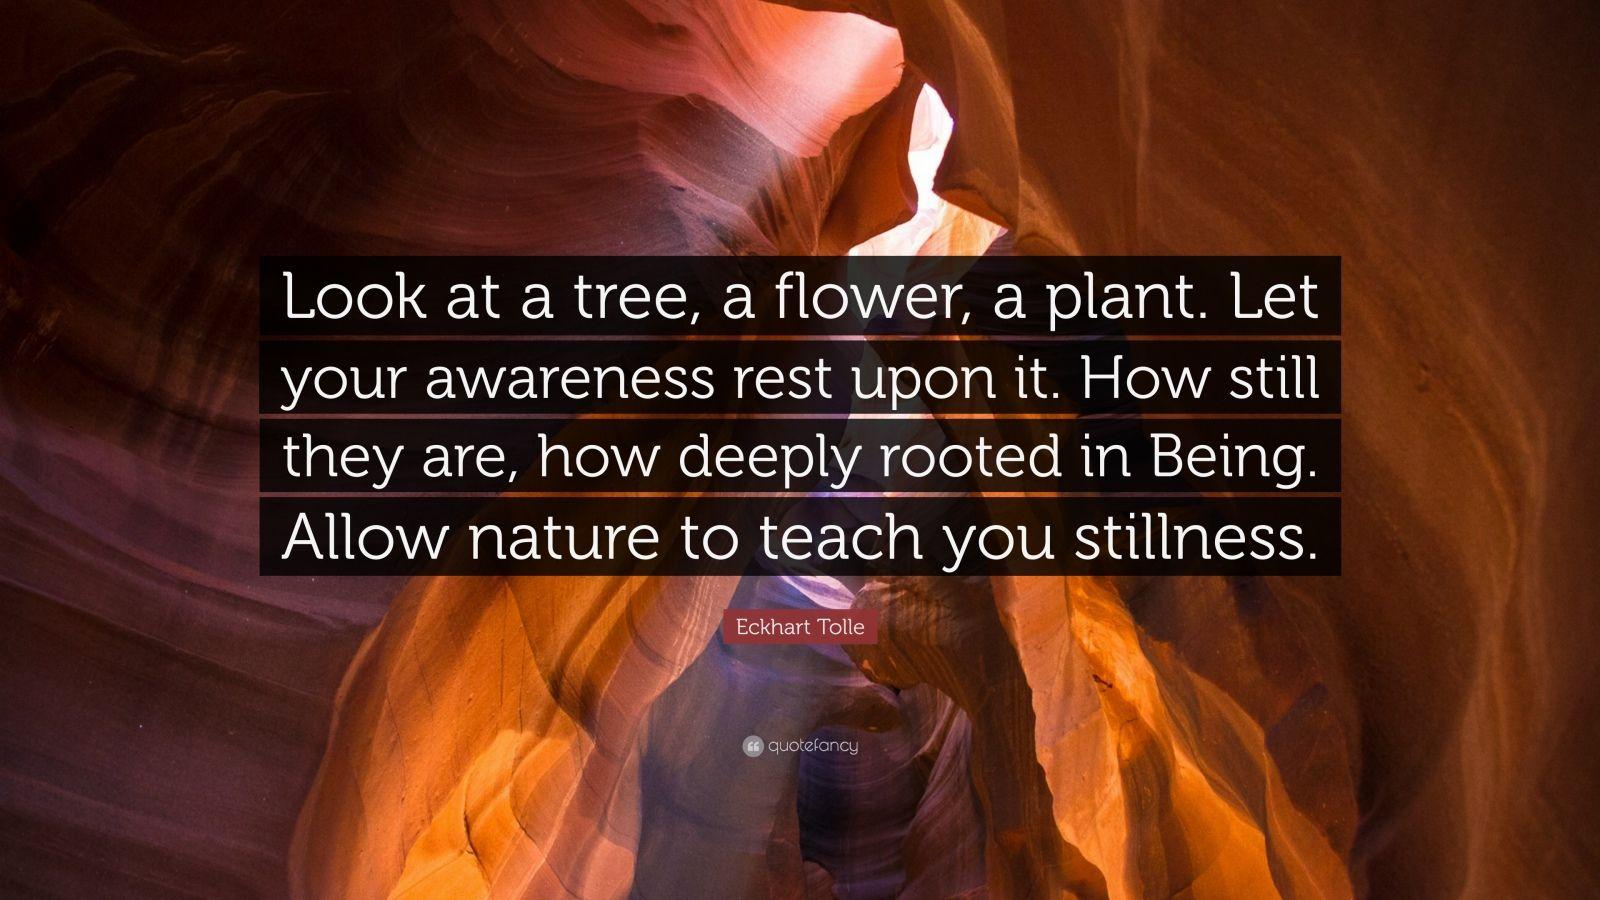 """Eckhart Tolle Quote: """"Look at a tree, a flower, a plant. Let your awareness rest upon it. How still they are, how deeply rooted in Being. Allow nature to teach you stillness."""""""